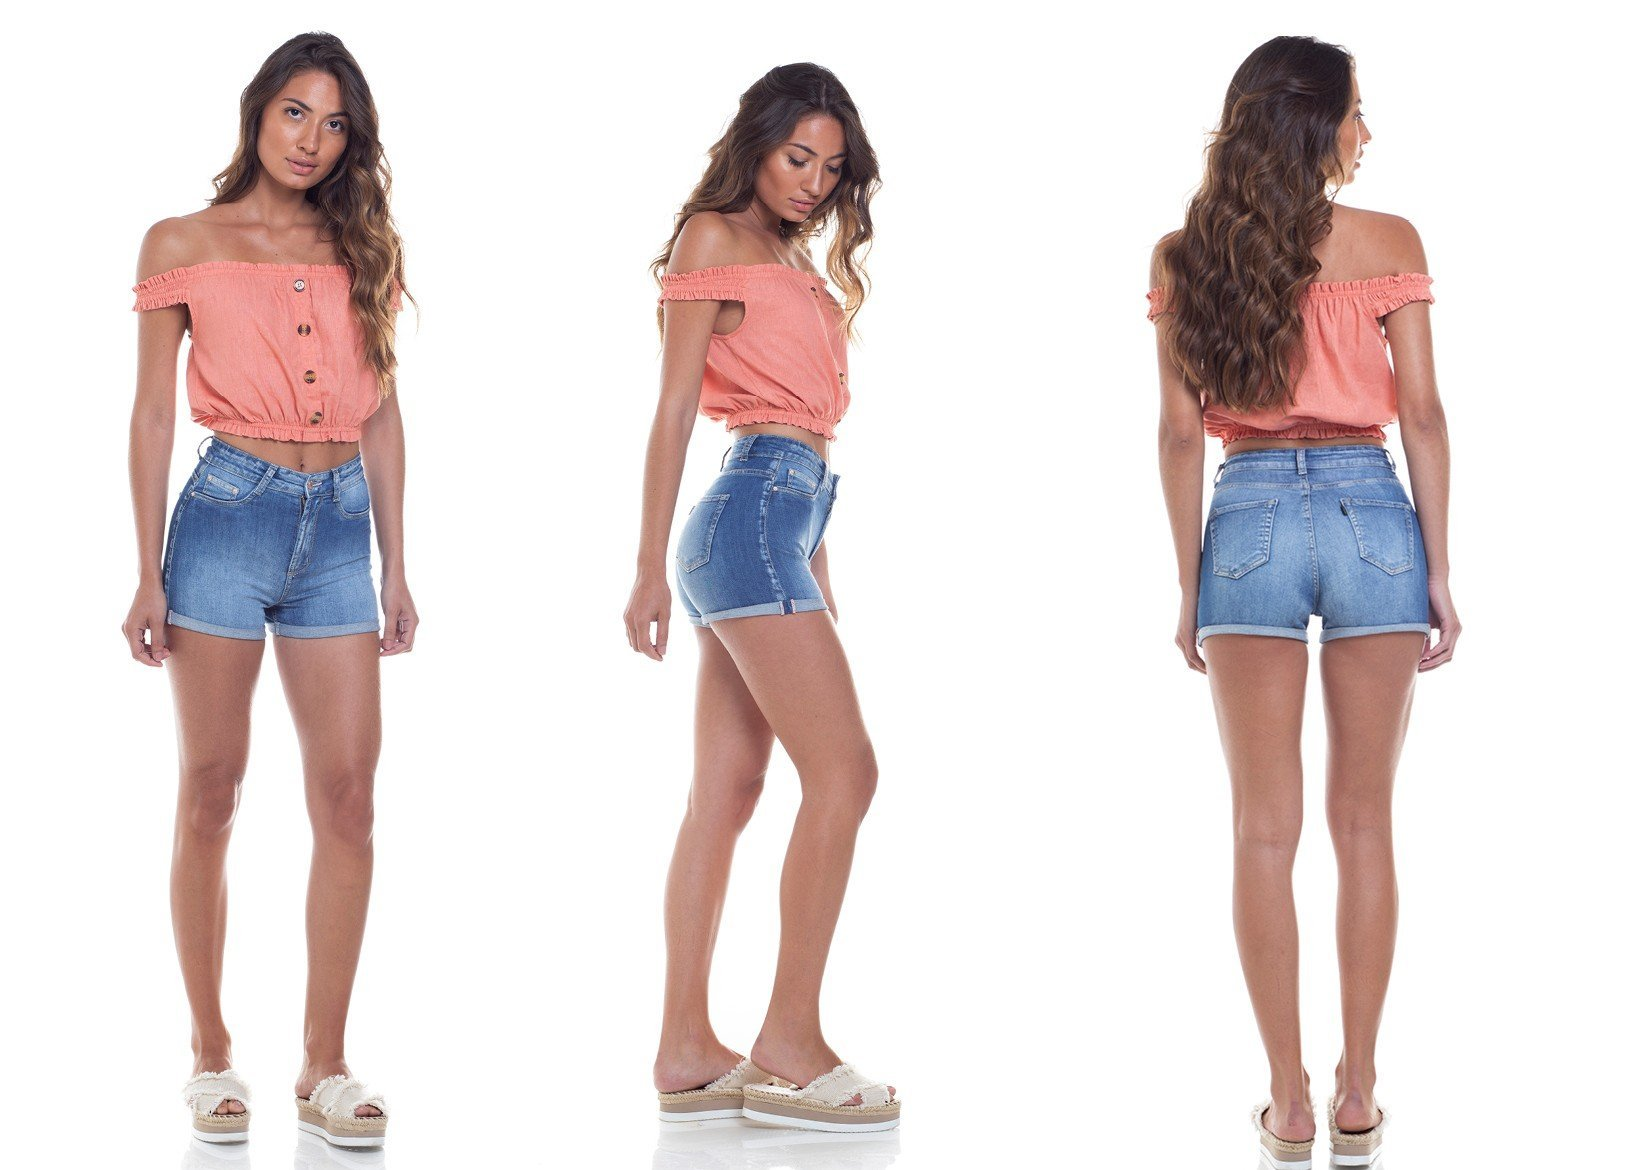 dz6280 shorts pin up tripla